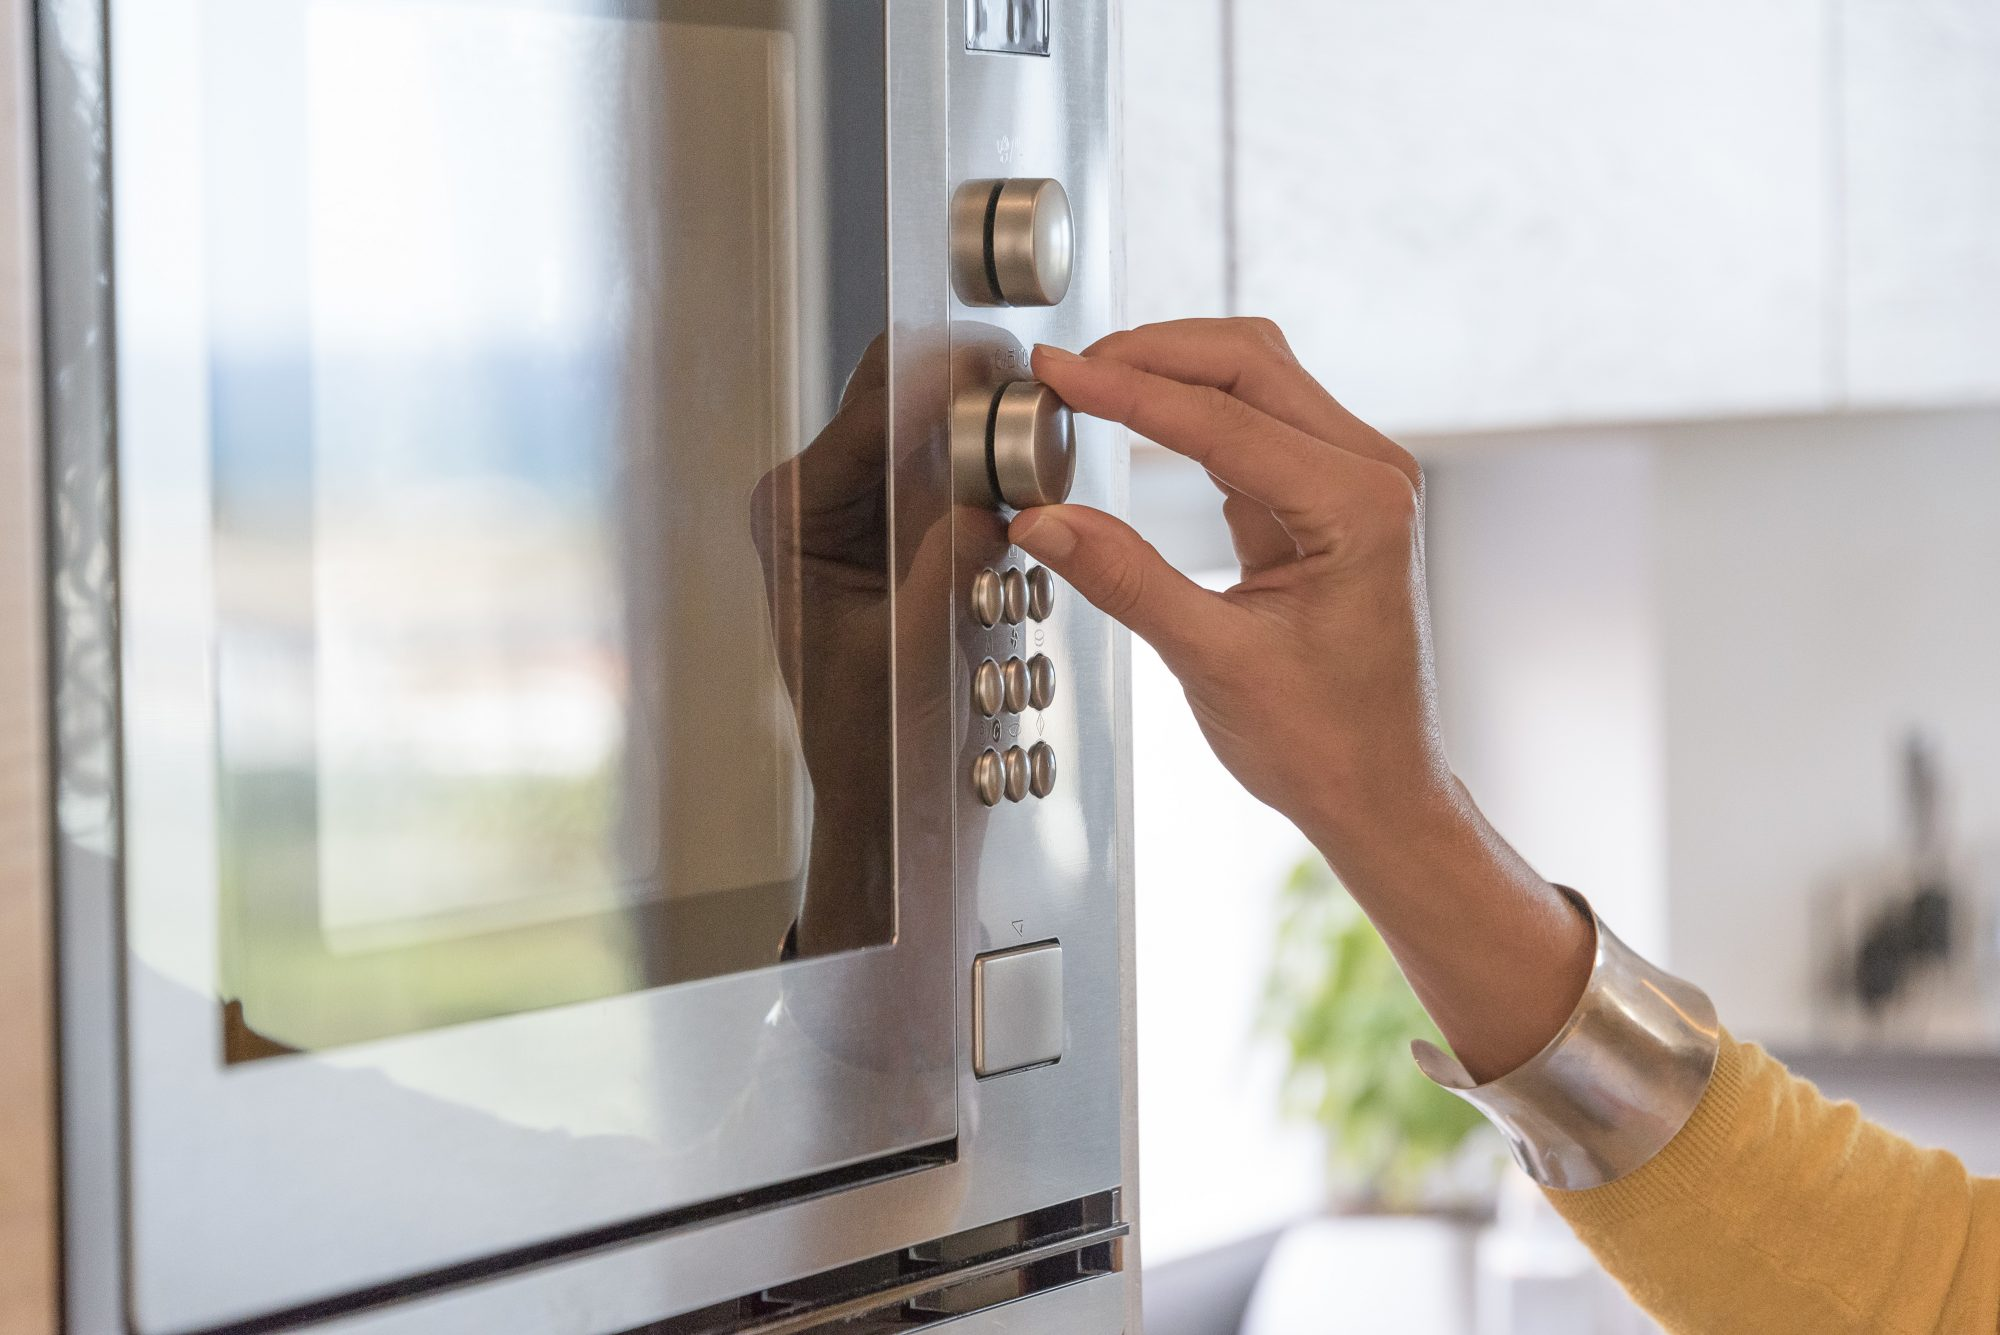 Woman Pressing Buttons on Microwave